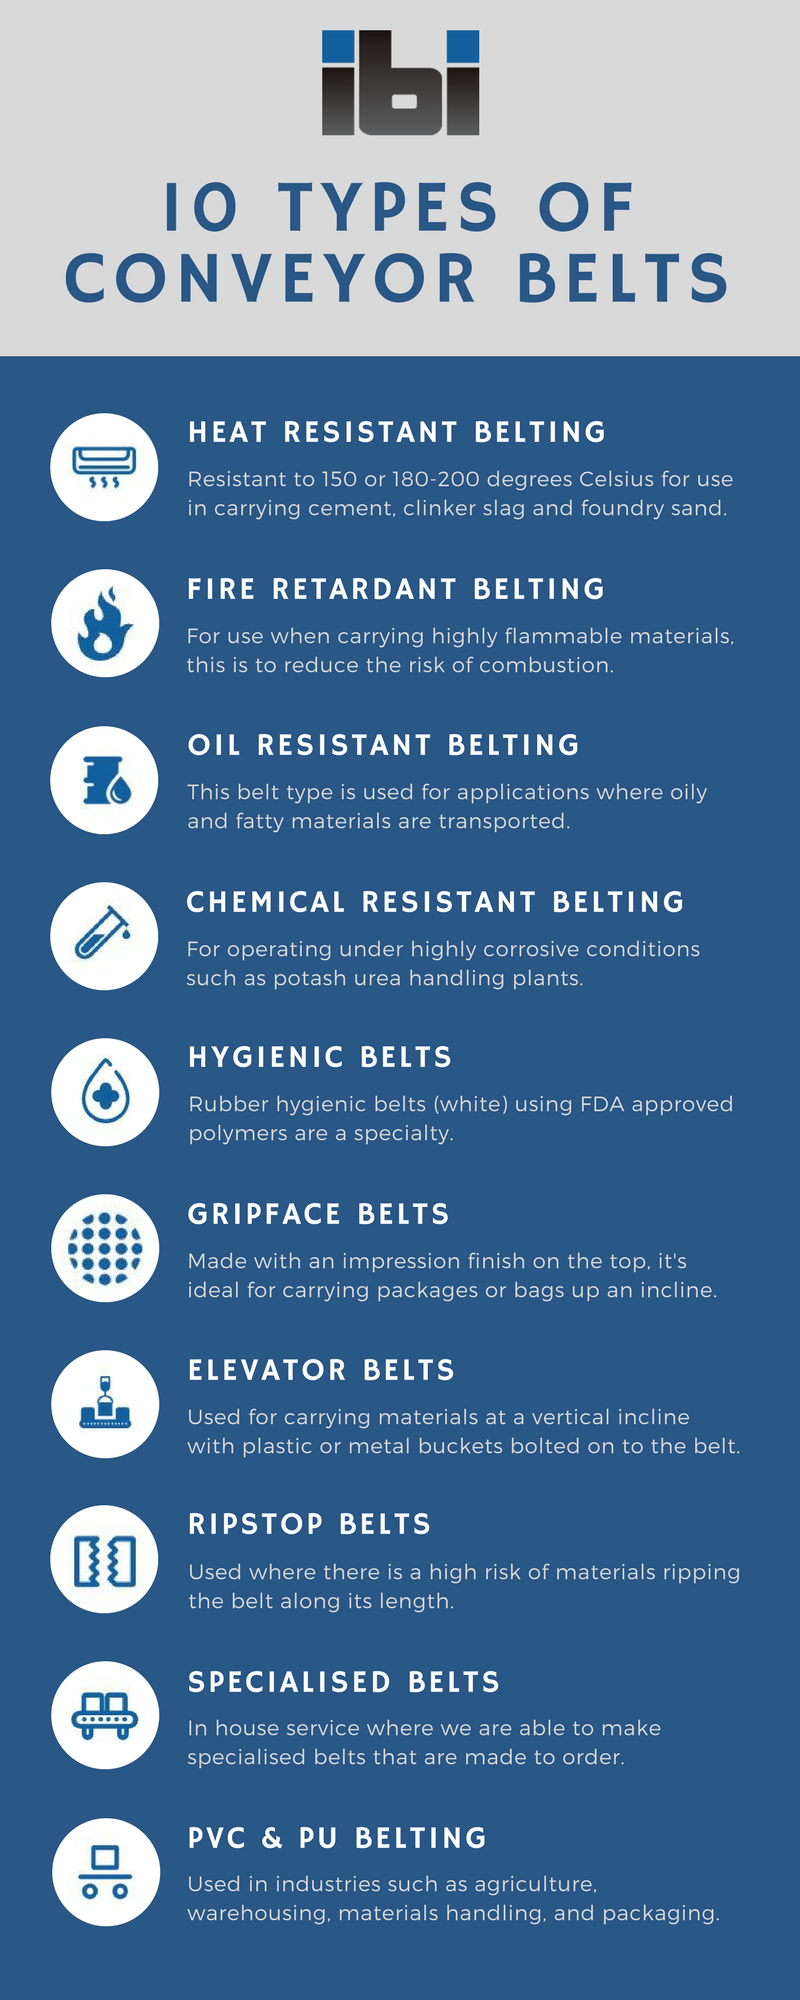 Different Types of Conveyor Belts | uCollect Infographics